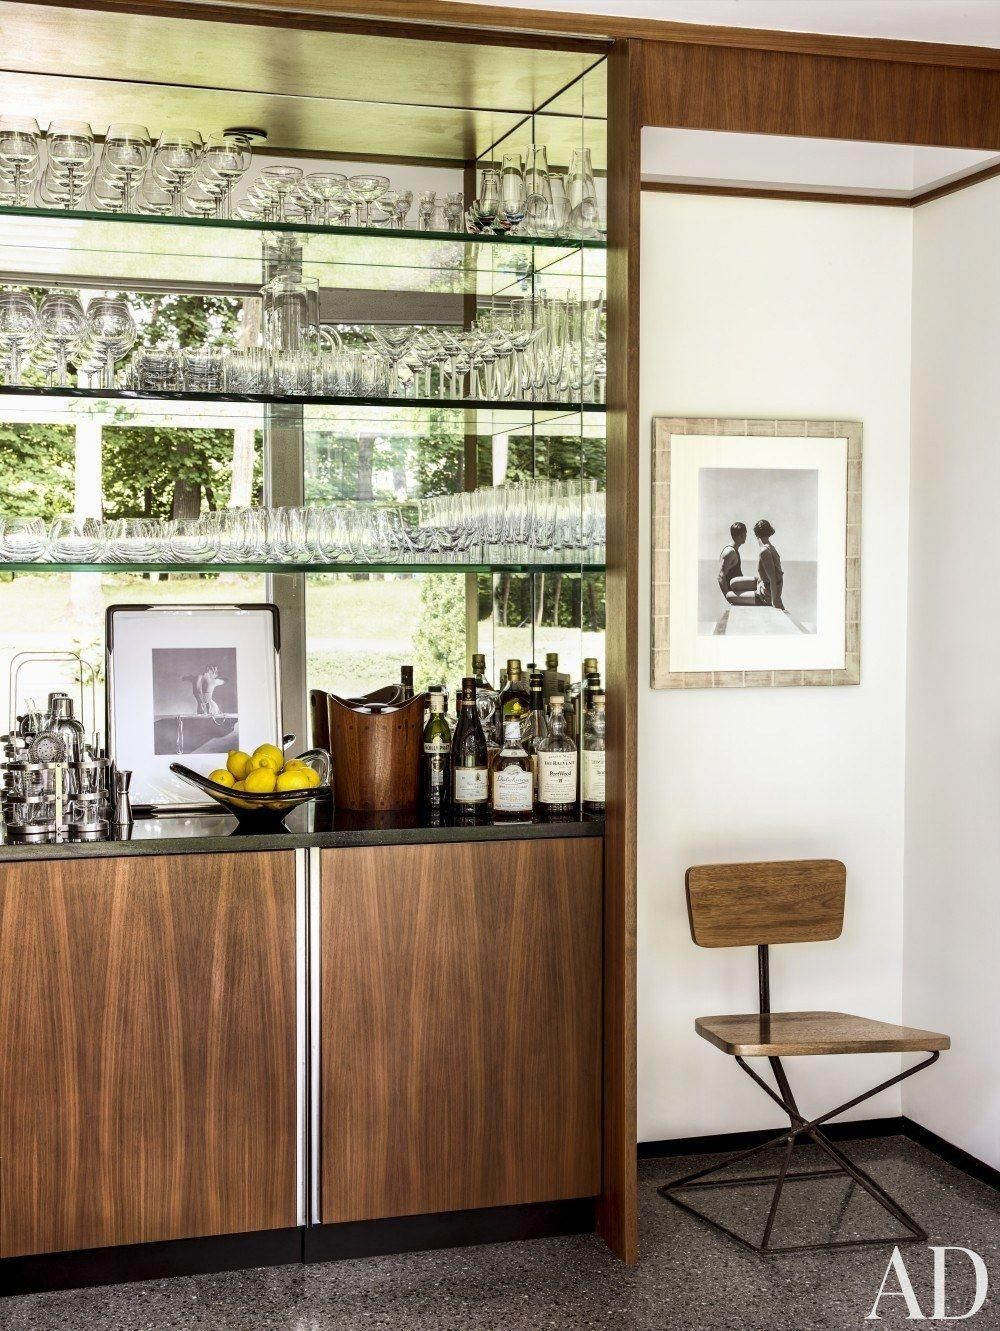 Home bar furniture and design ideas photos architectural digest homebardecorationonline also rh pinterest